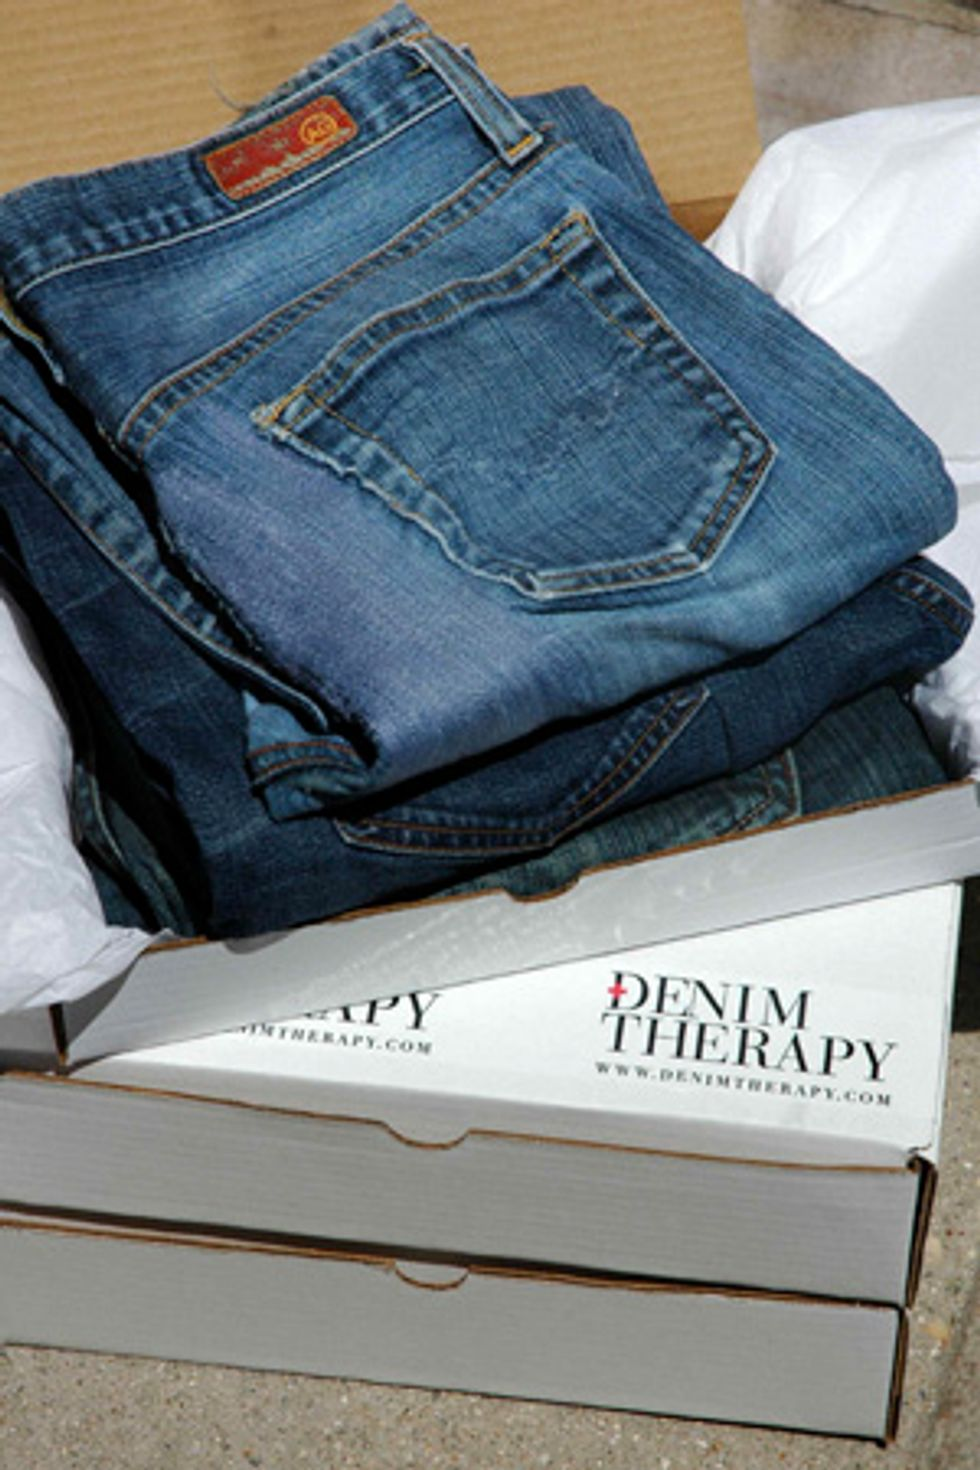 Denim Therapy: Your Blue Jean 911